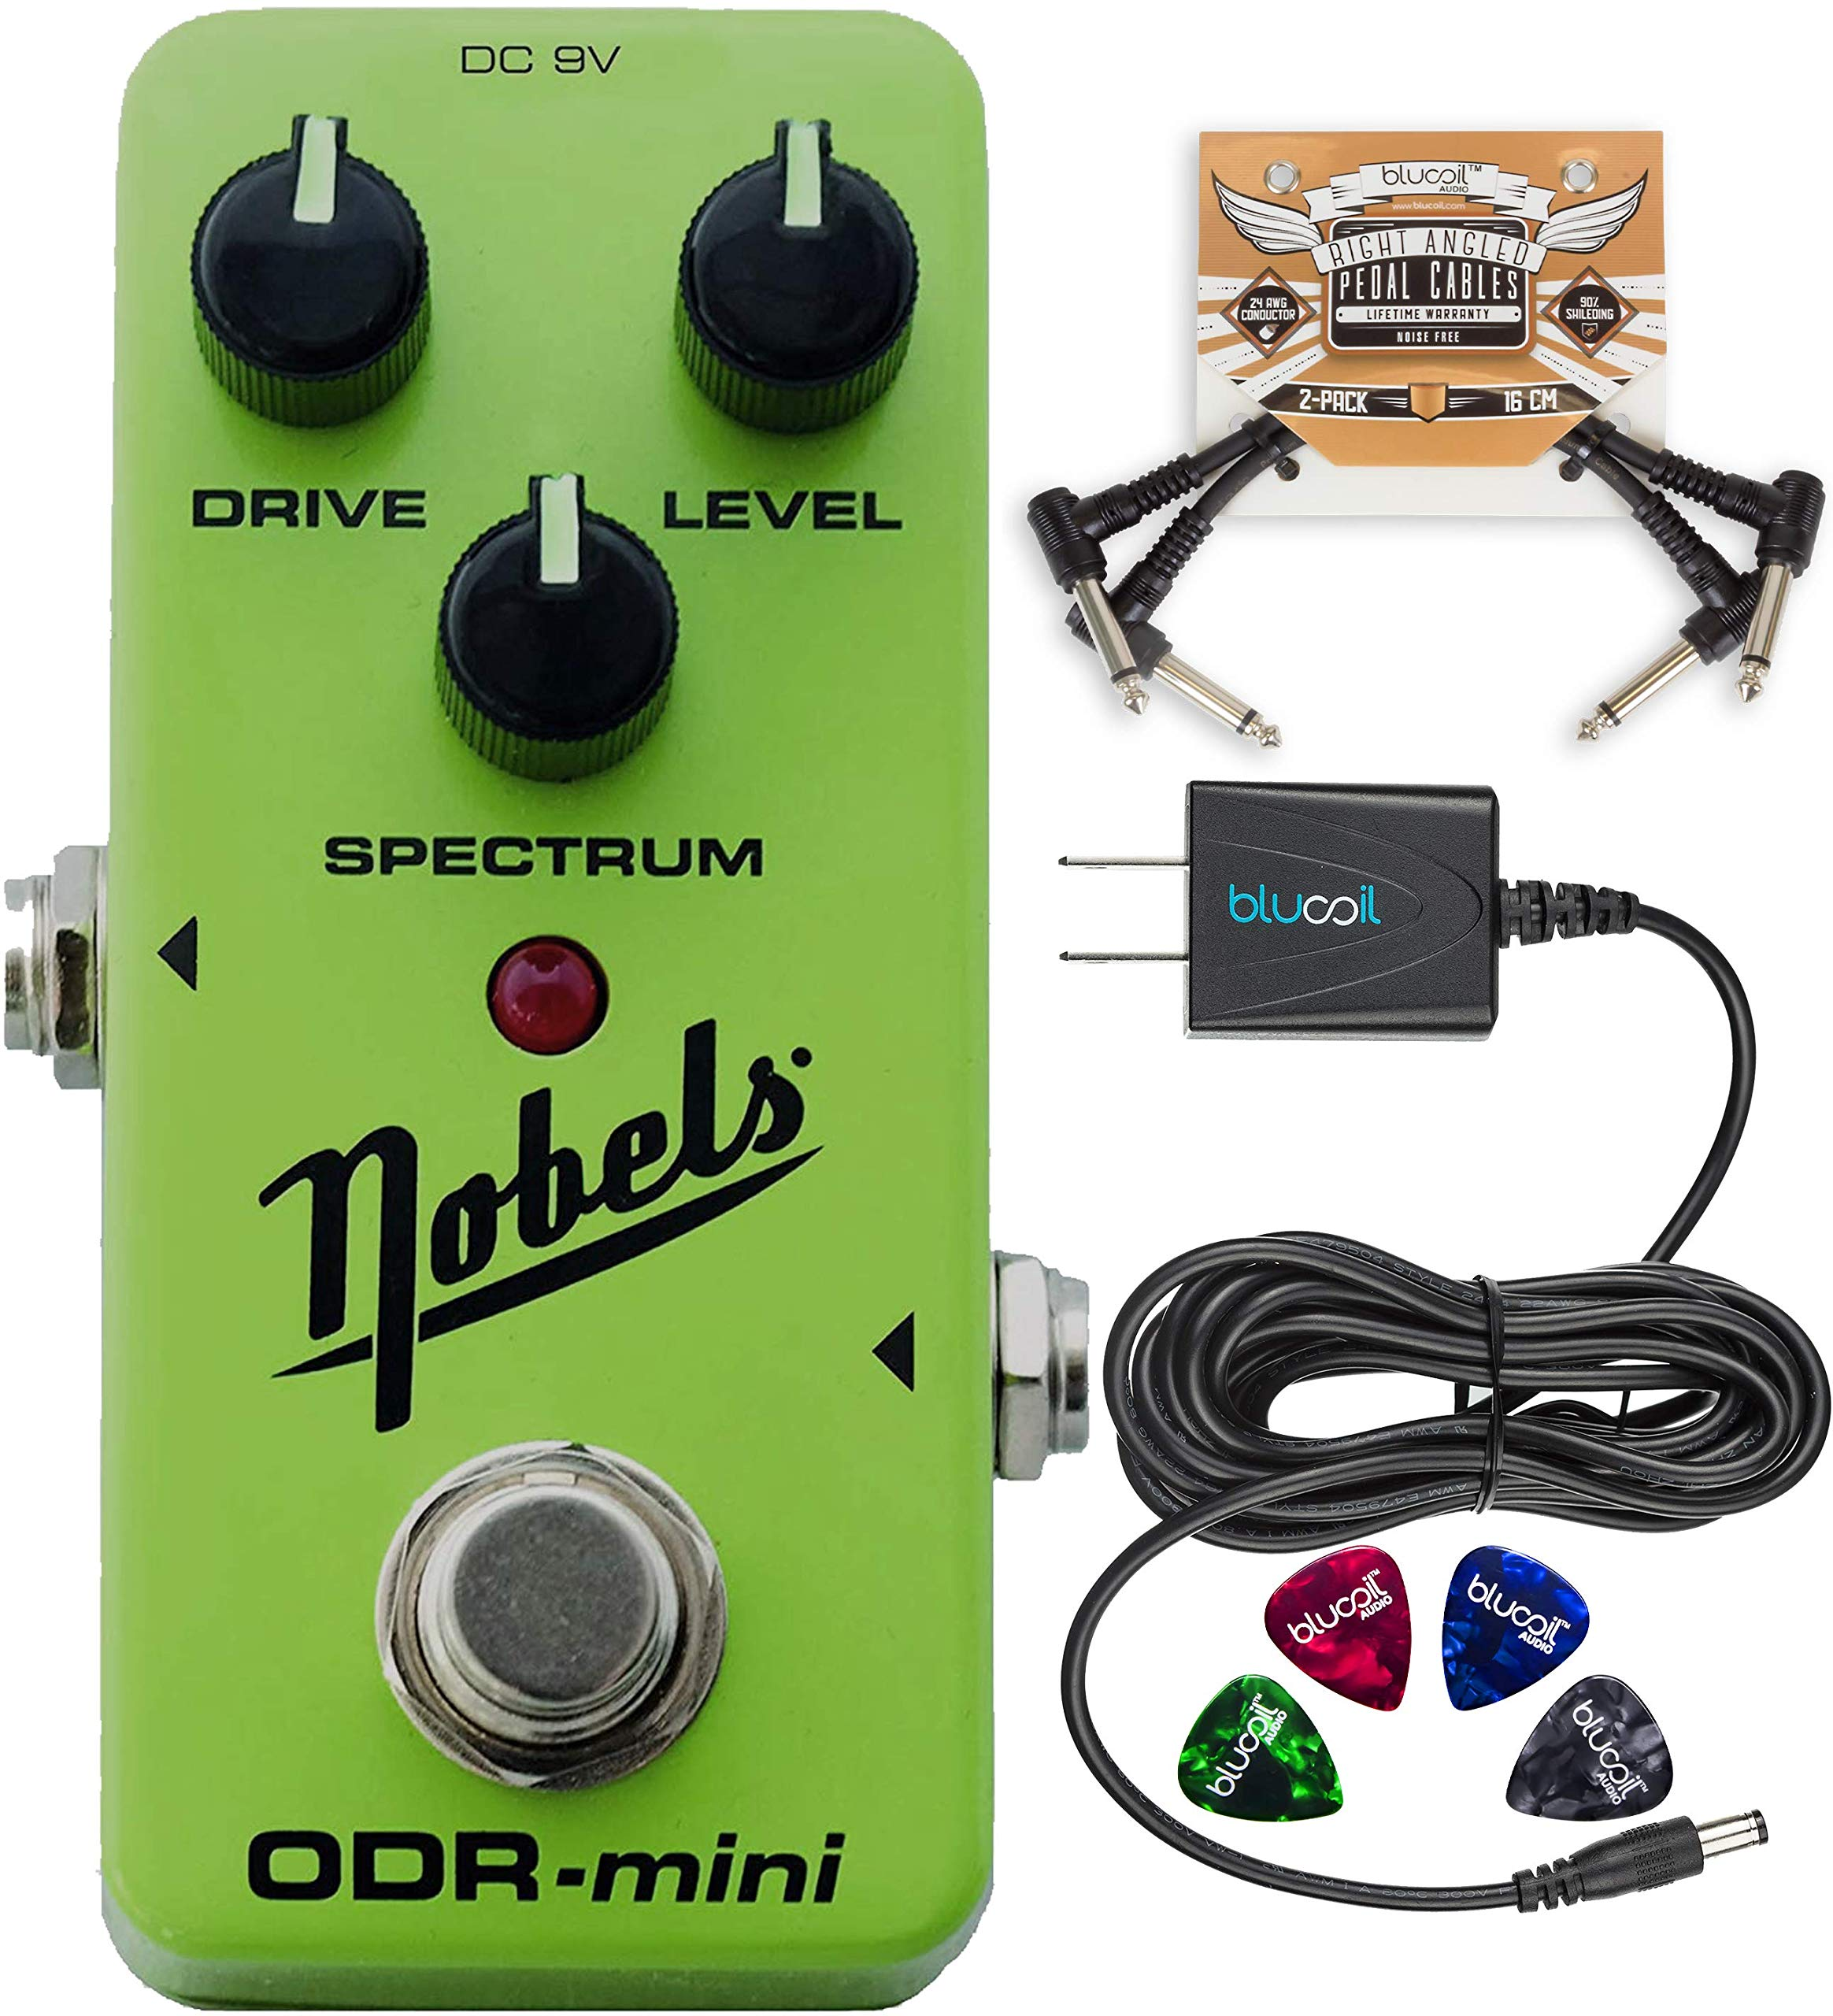 Nobels ODR-Mini Overdrive Pedal Bundle with Blucoil Slim 9V 670ma Power Supply AC Adapter, 2-Pack of Pedal Patch Cables, and 4-Pack of Celluloid Guitar Picks